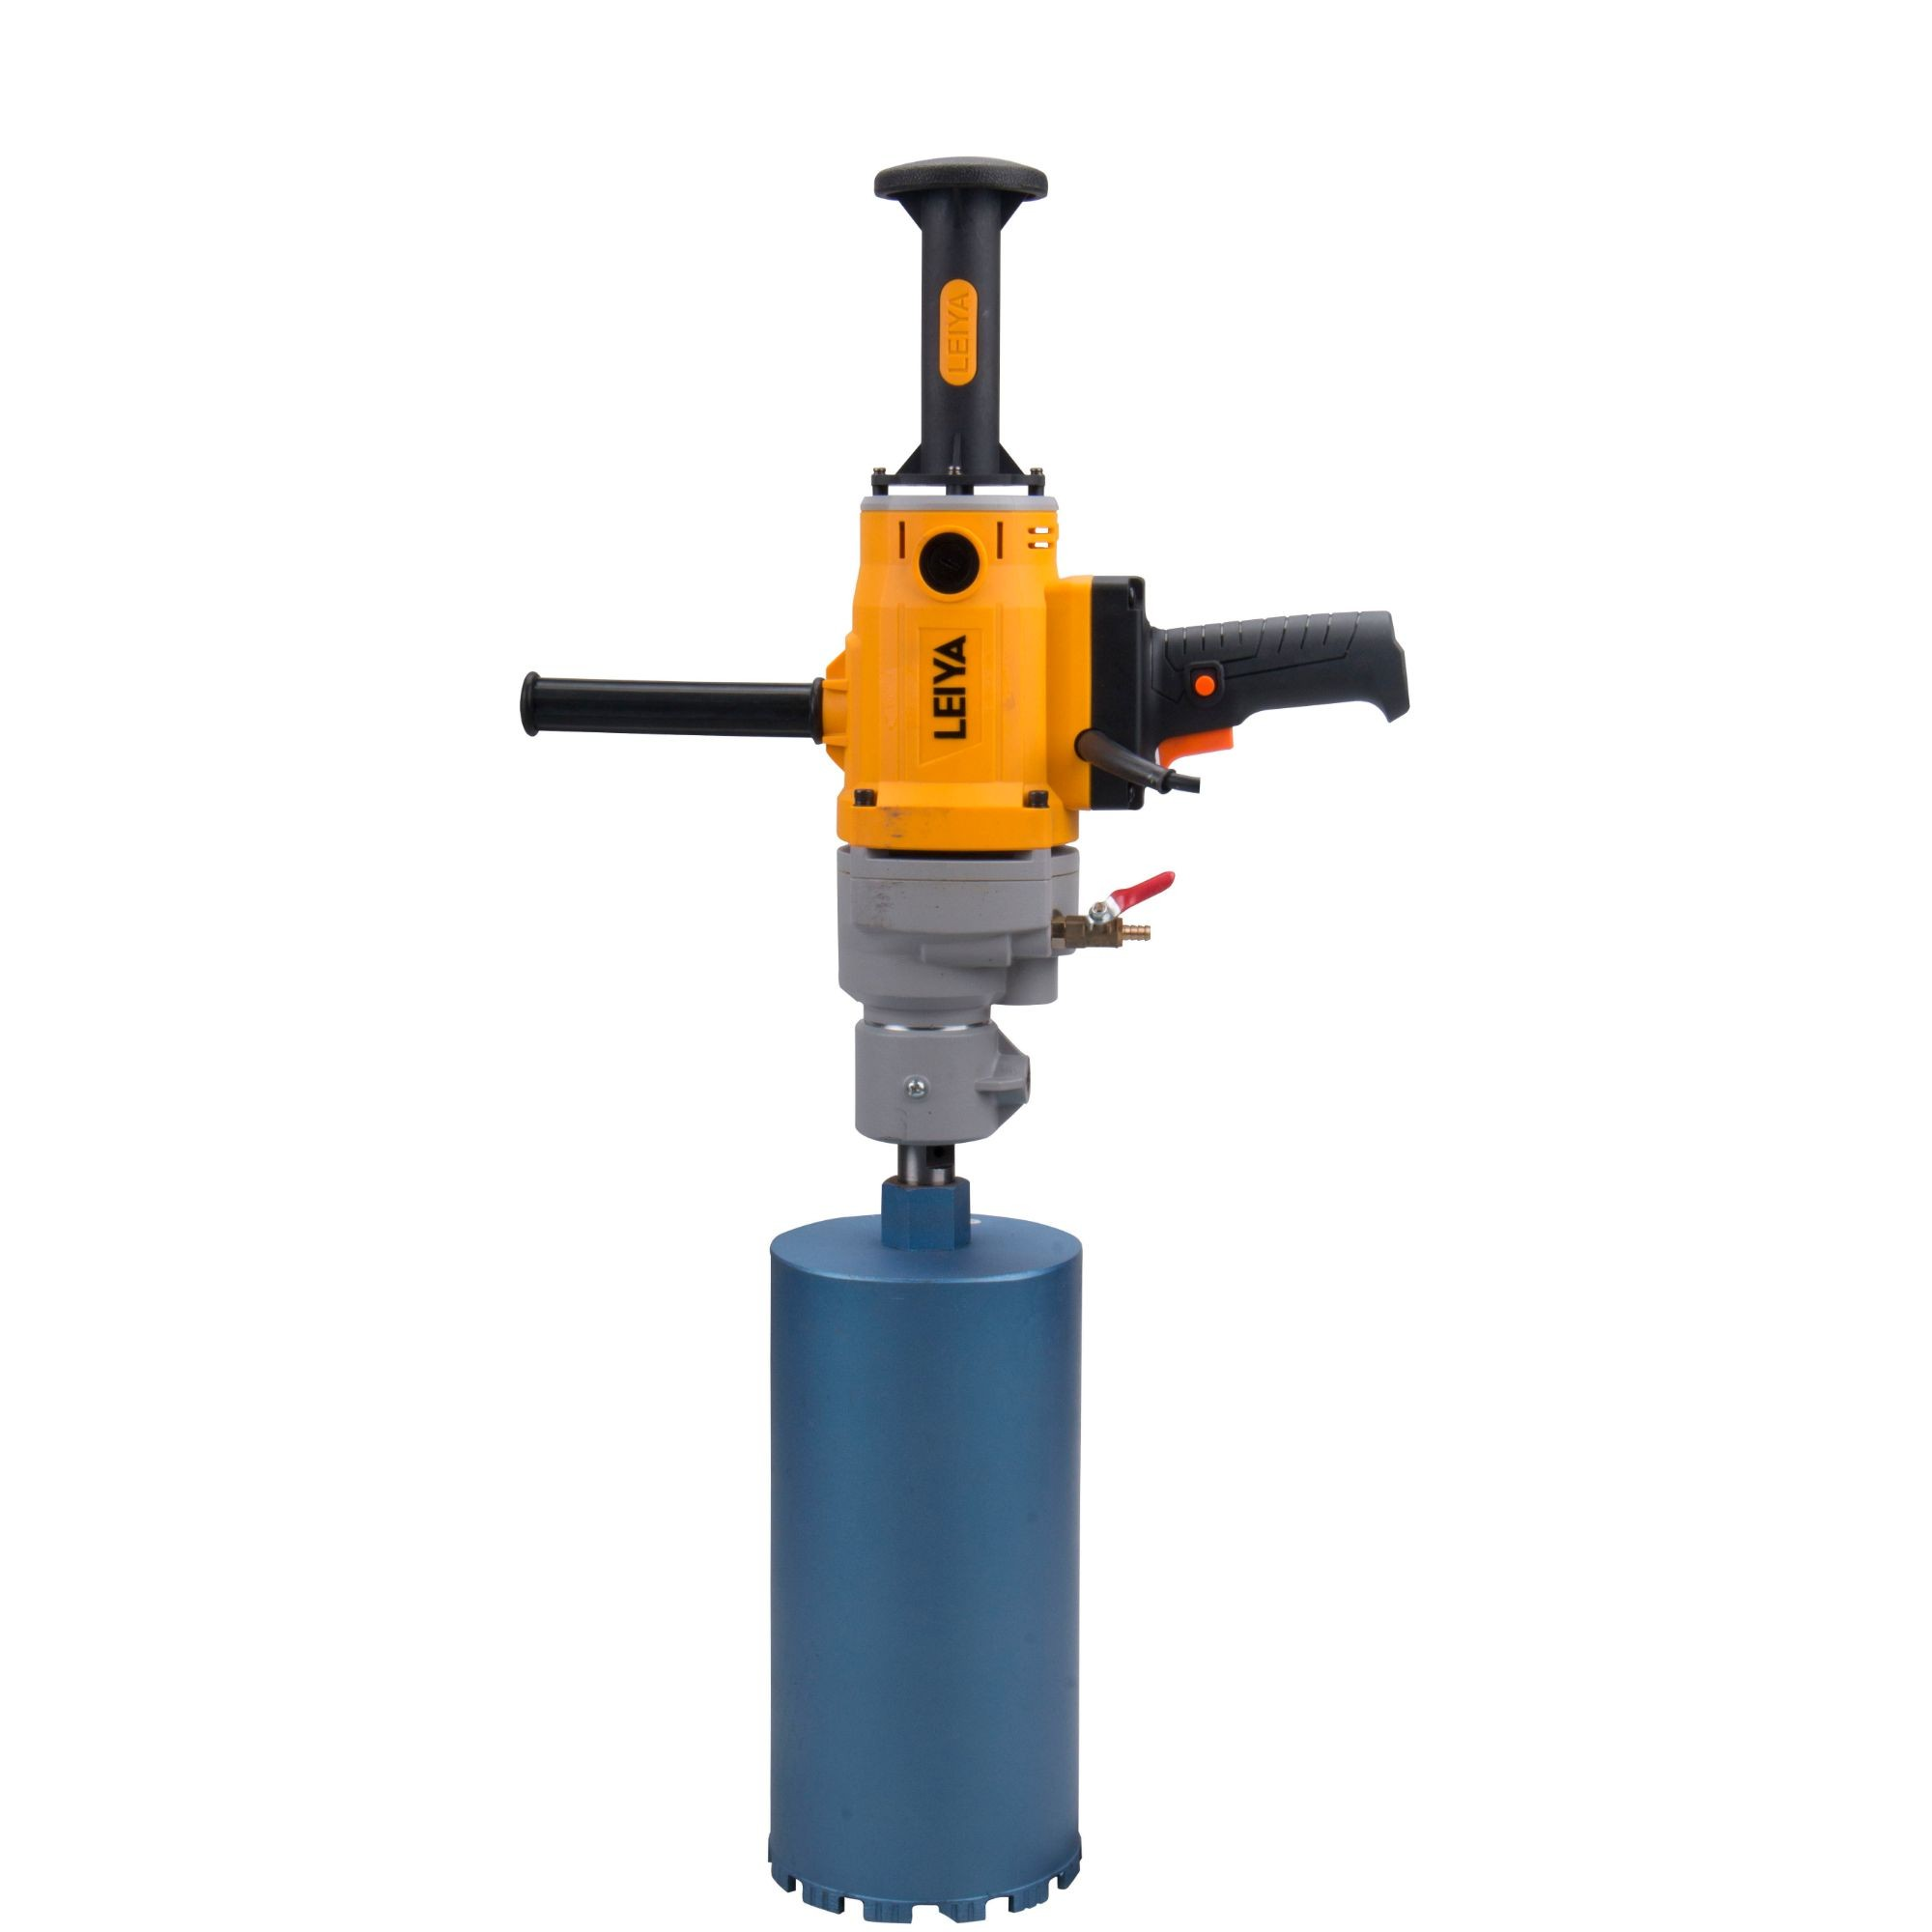 Diameter Working Hole Size 175mm 2300w Diamond Core Drill With Overload Auto-stop LY-6175